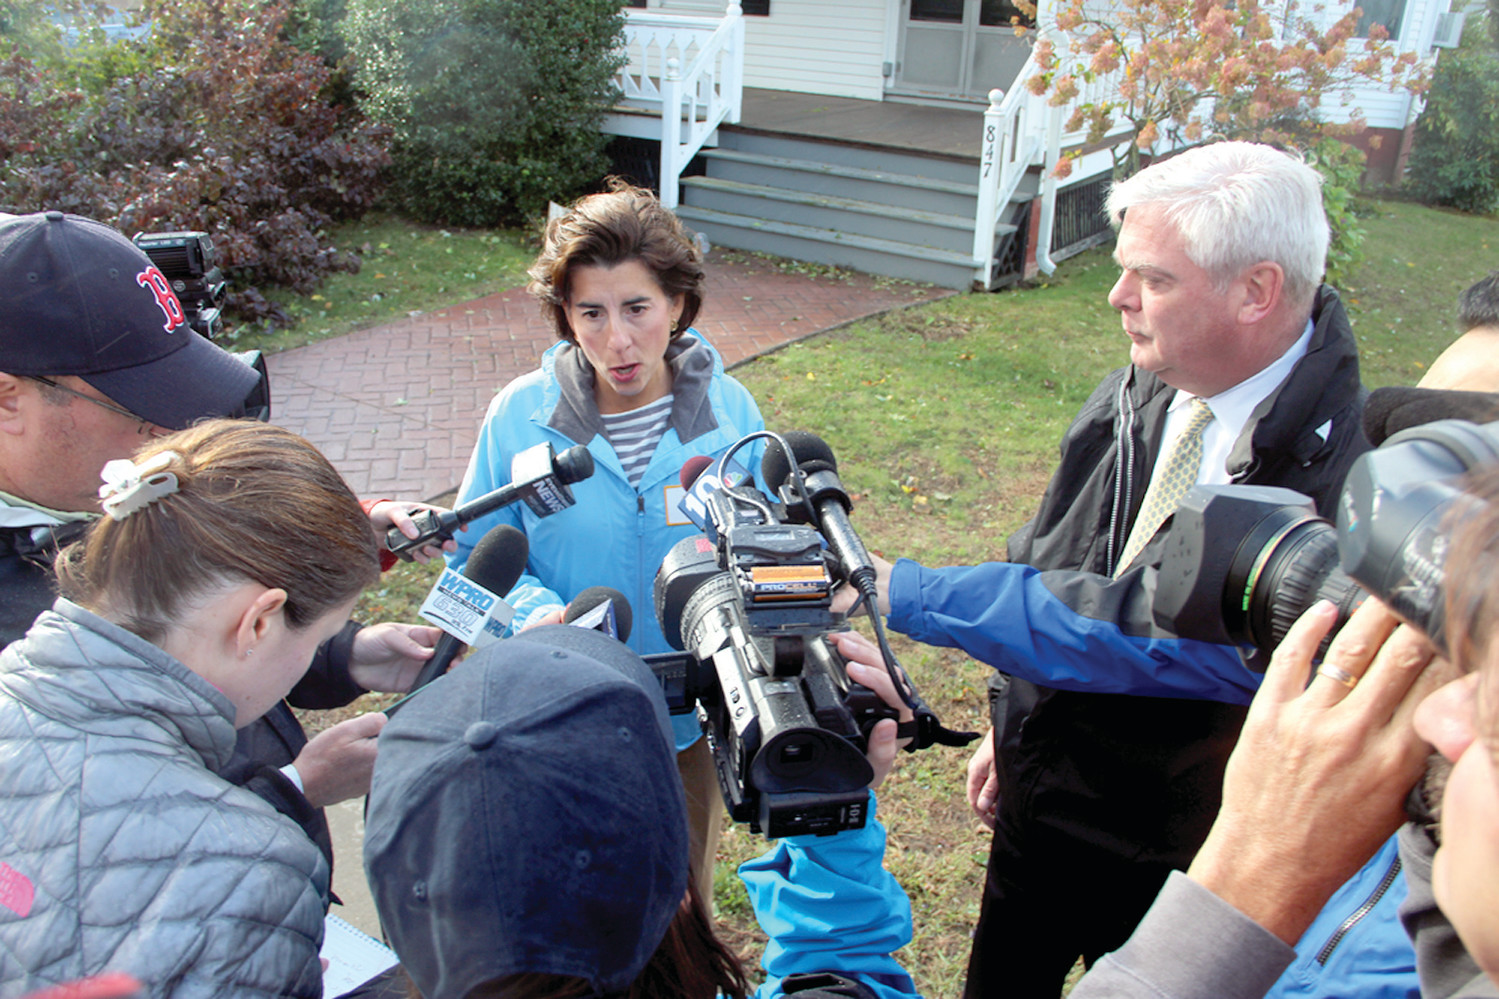 STORM UPDATE: Gov. Gina Raimondo joined Mayor Scott Avedisian and other city officials in Conimicut Monday morning to brief the news media on damage caused by the fast-moving storm.